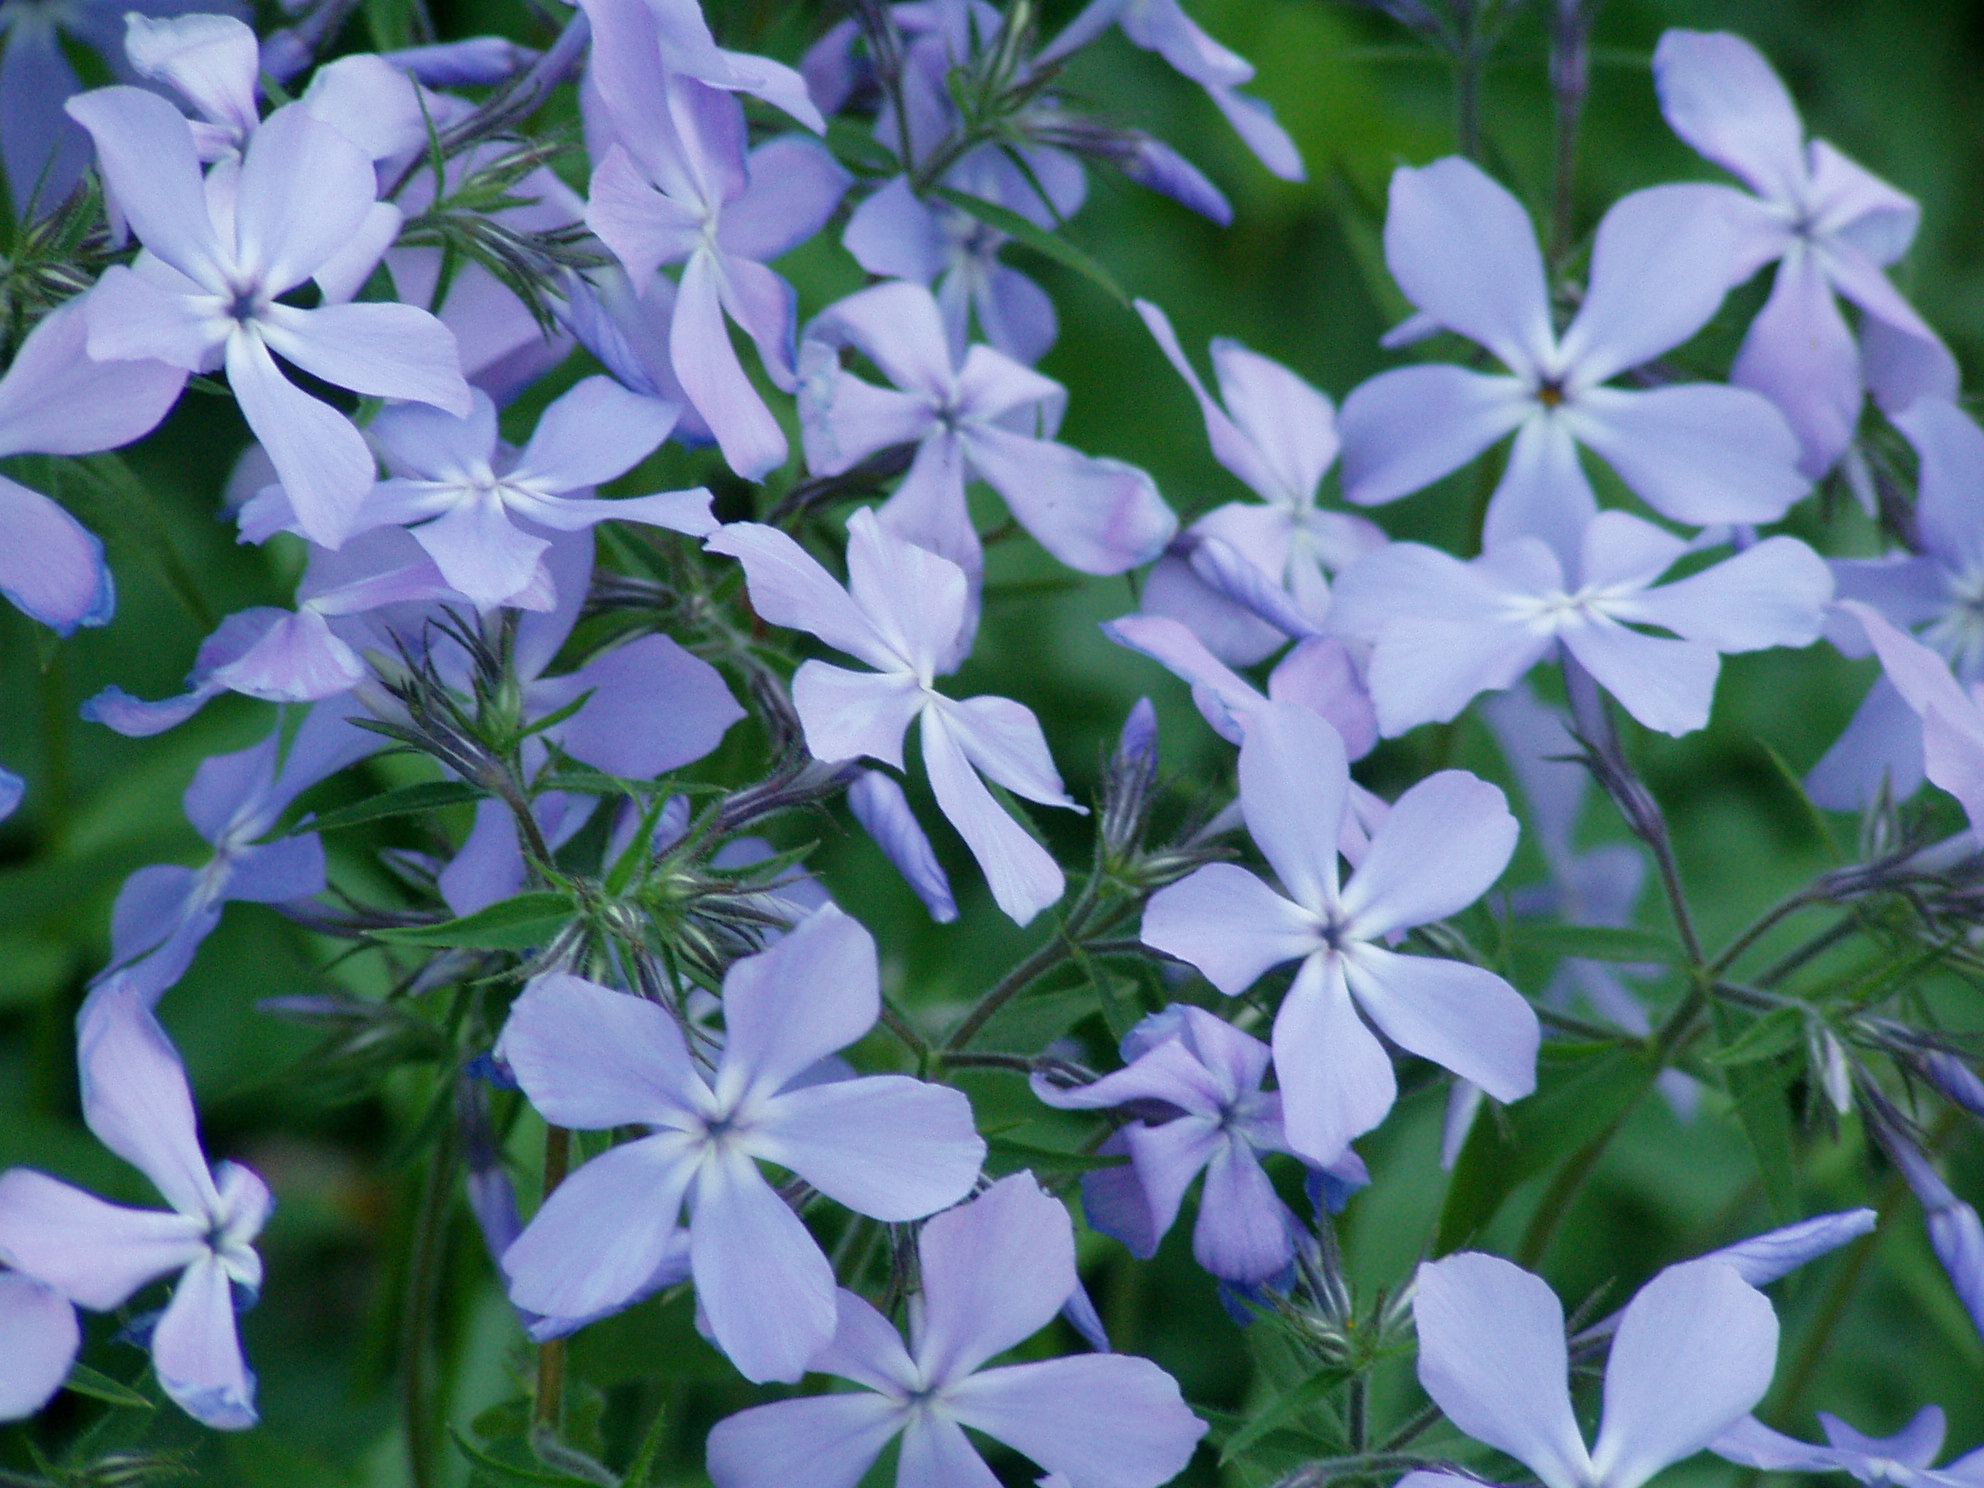 Phlox divaritica  is a key part of just one ecosystem web From Wikimedia Commons, CC BY-SA 3.0